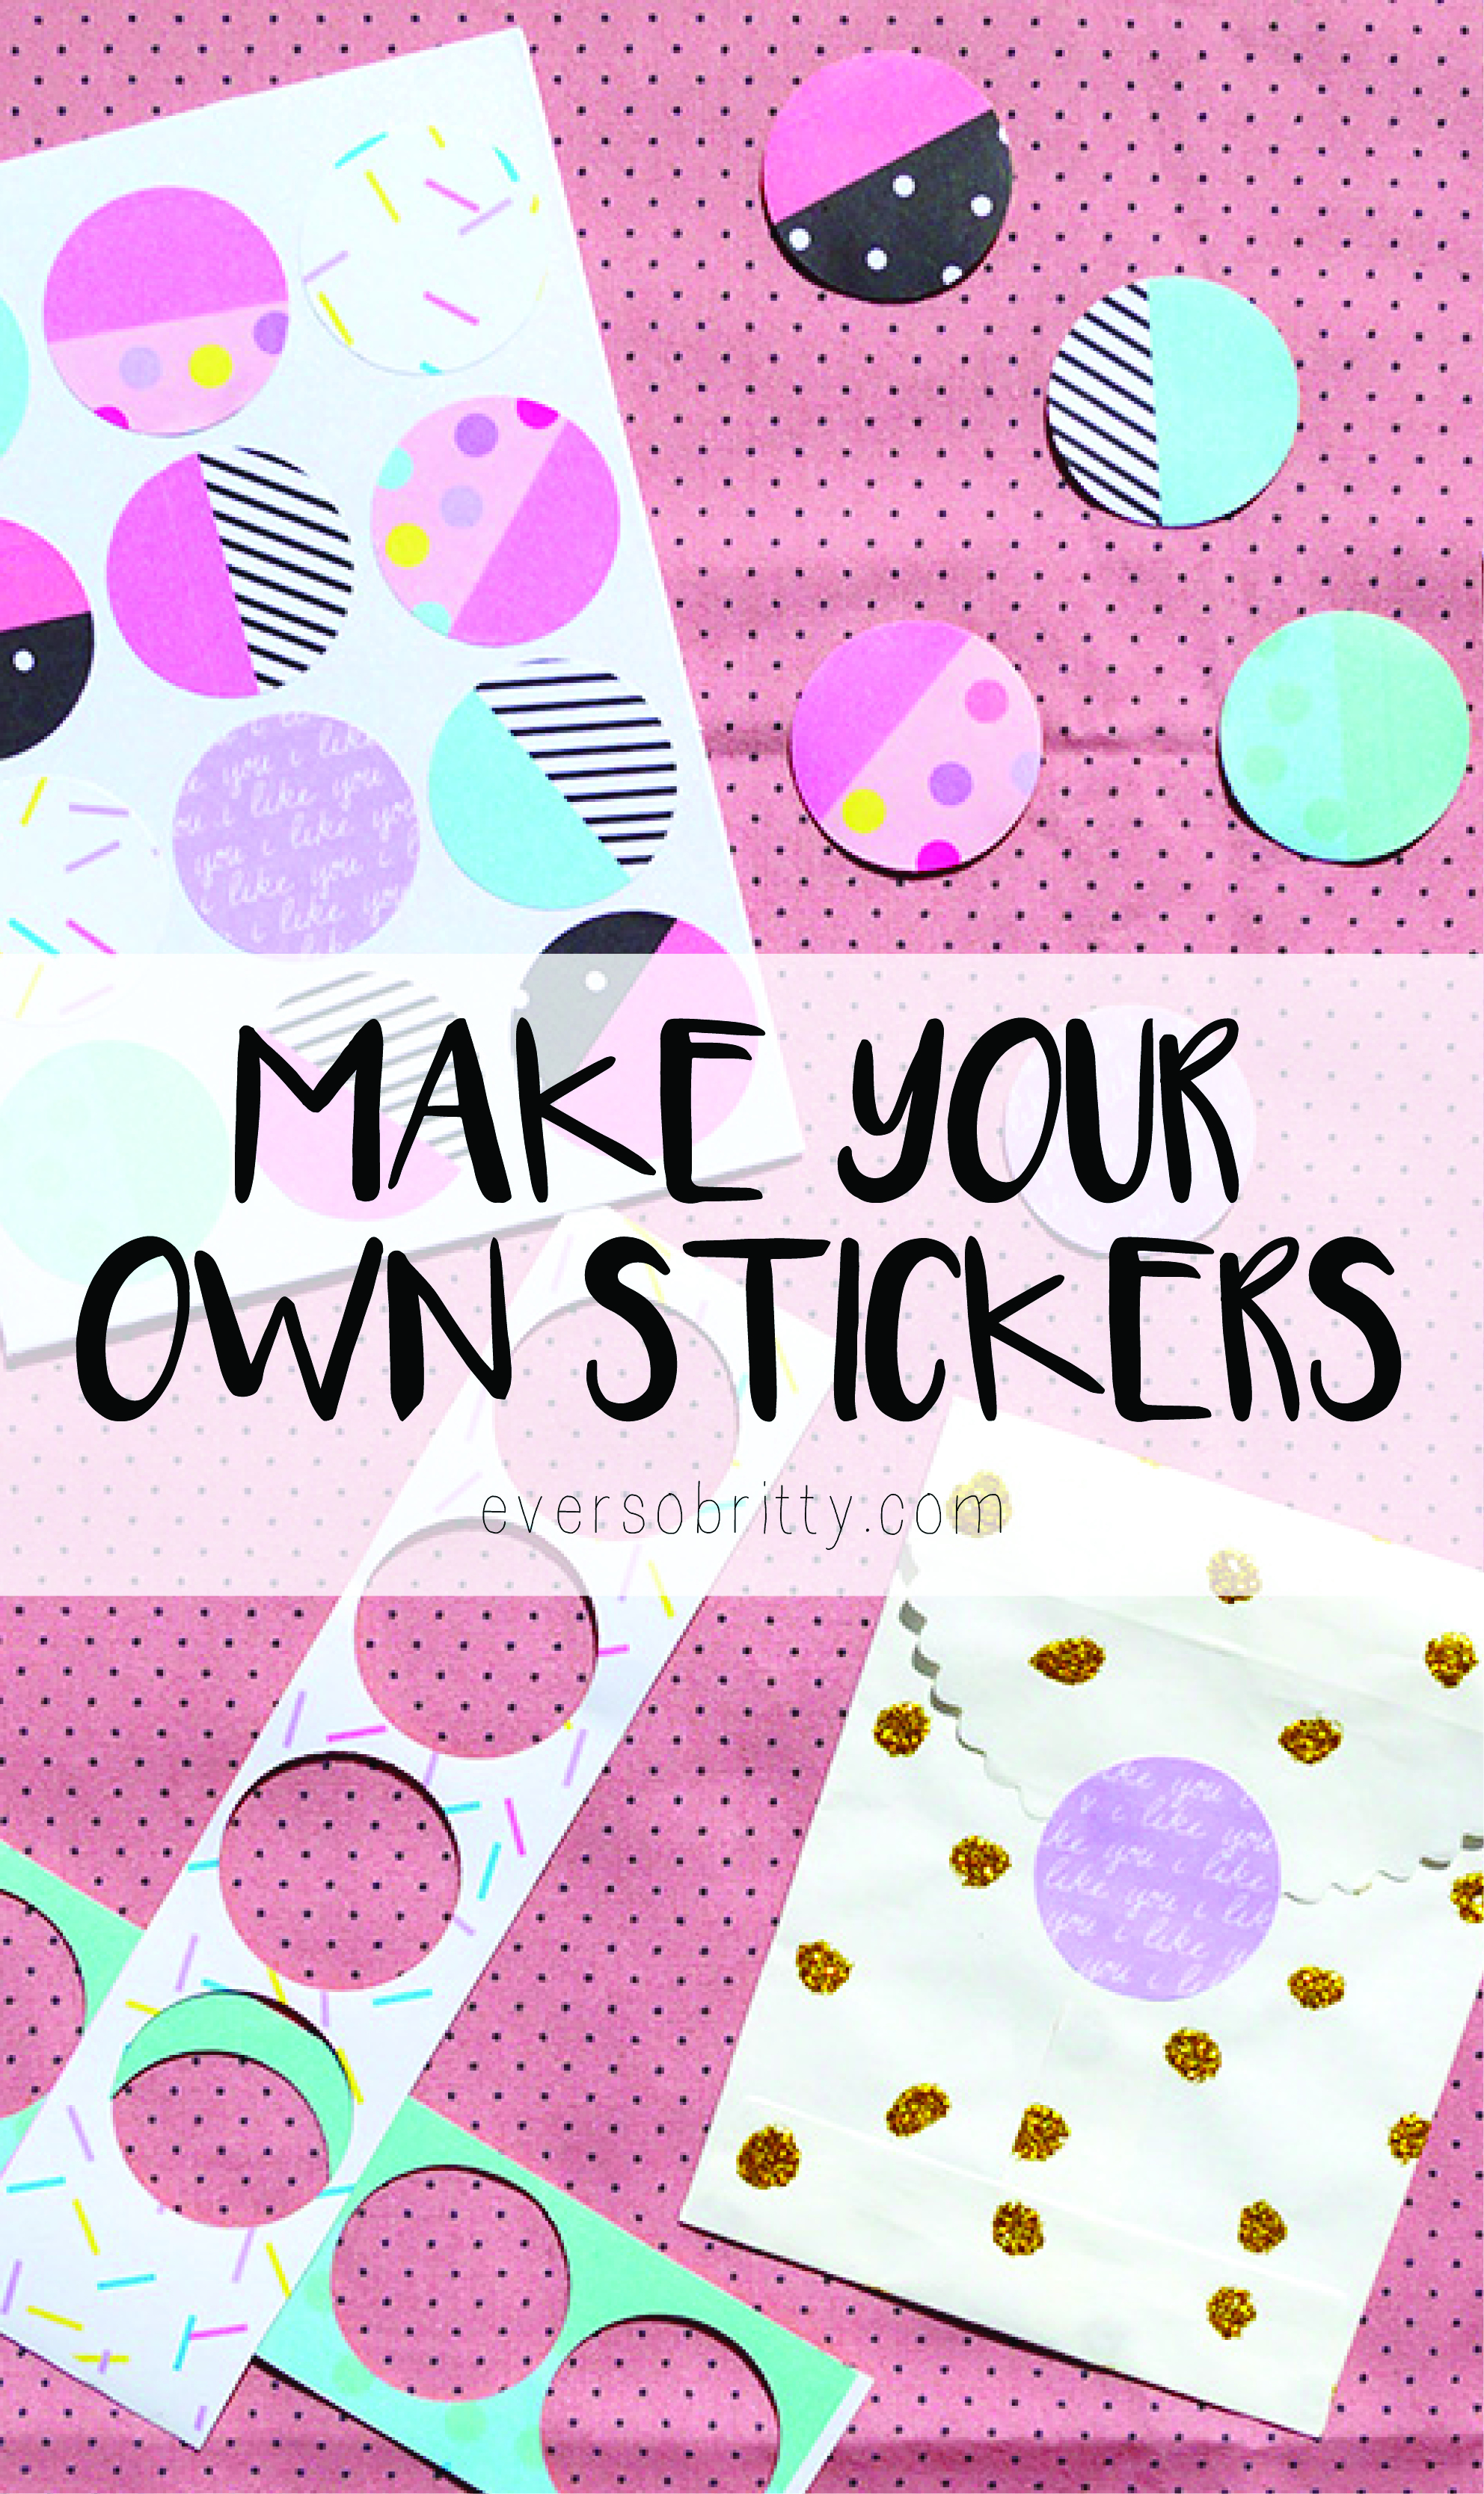 Make Your Own Stickers Free Printable Ever So Britty - Make your own stickers